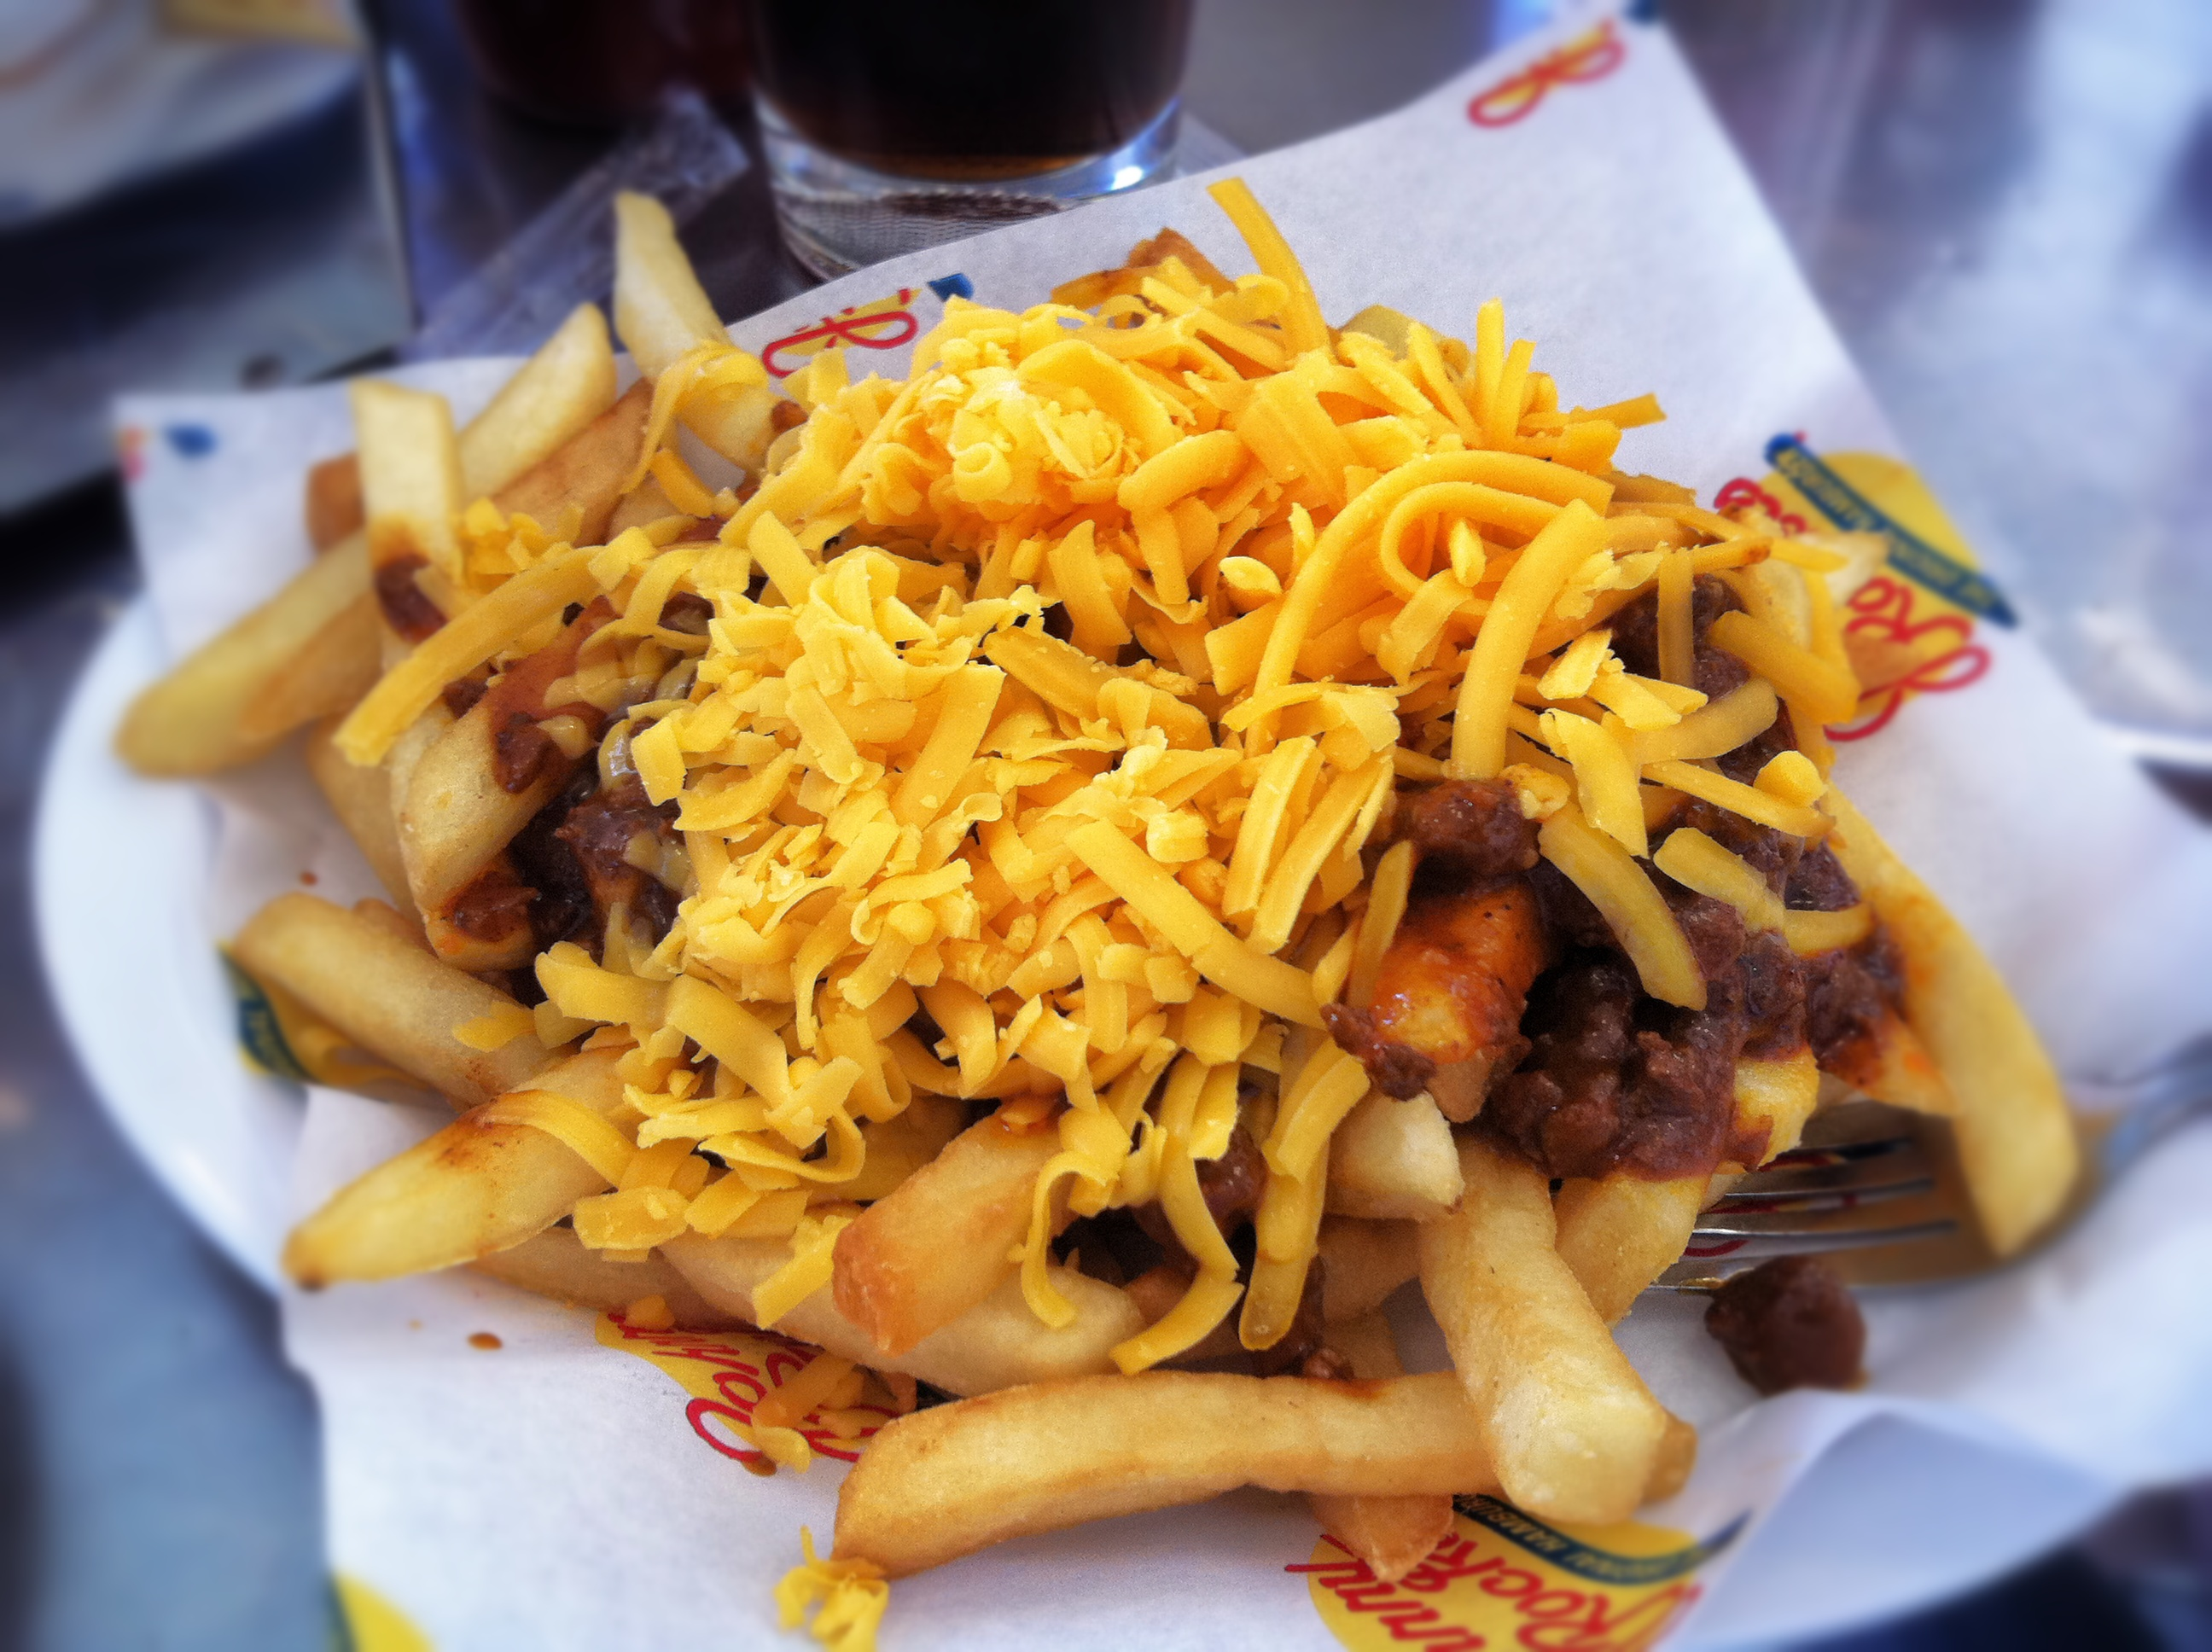 29 october 2013 # chili # cheese # fries # tanzenvsfood